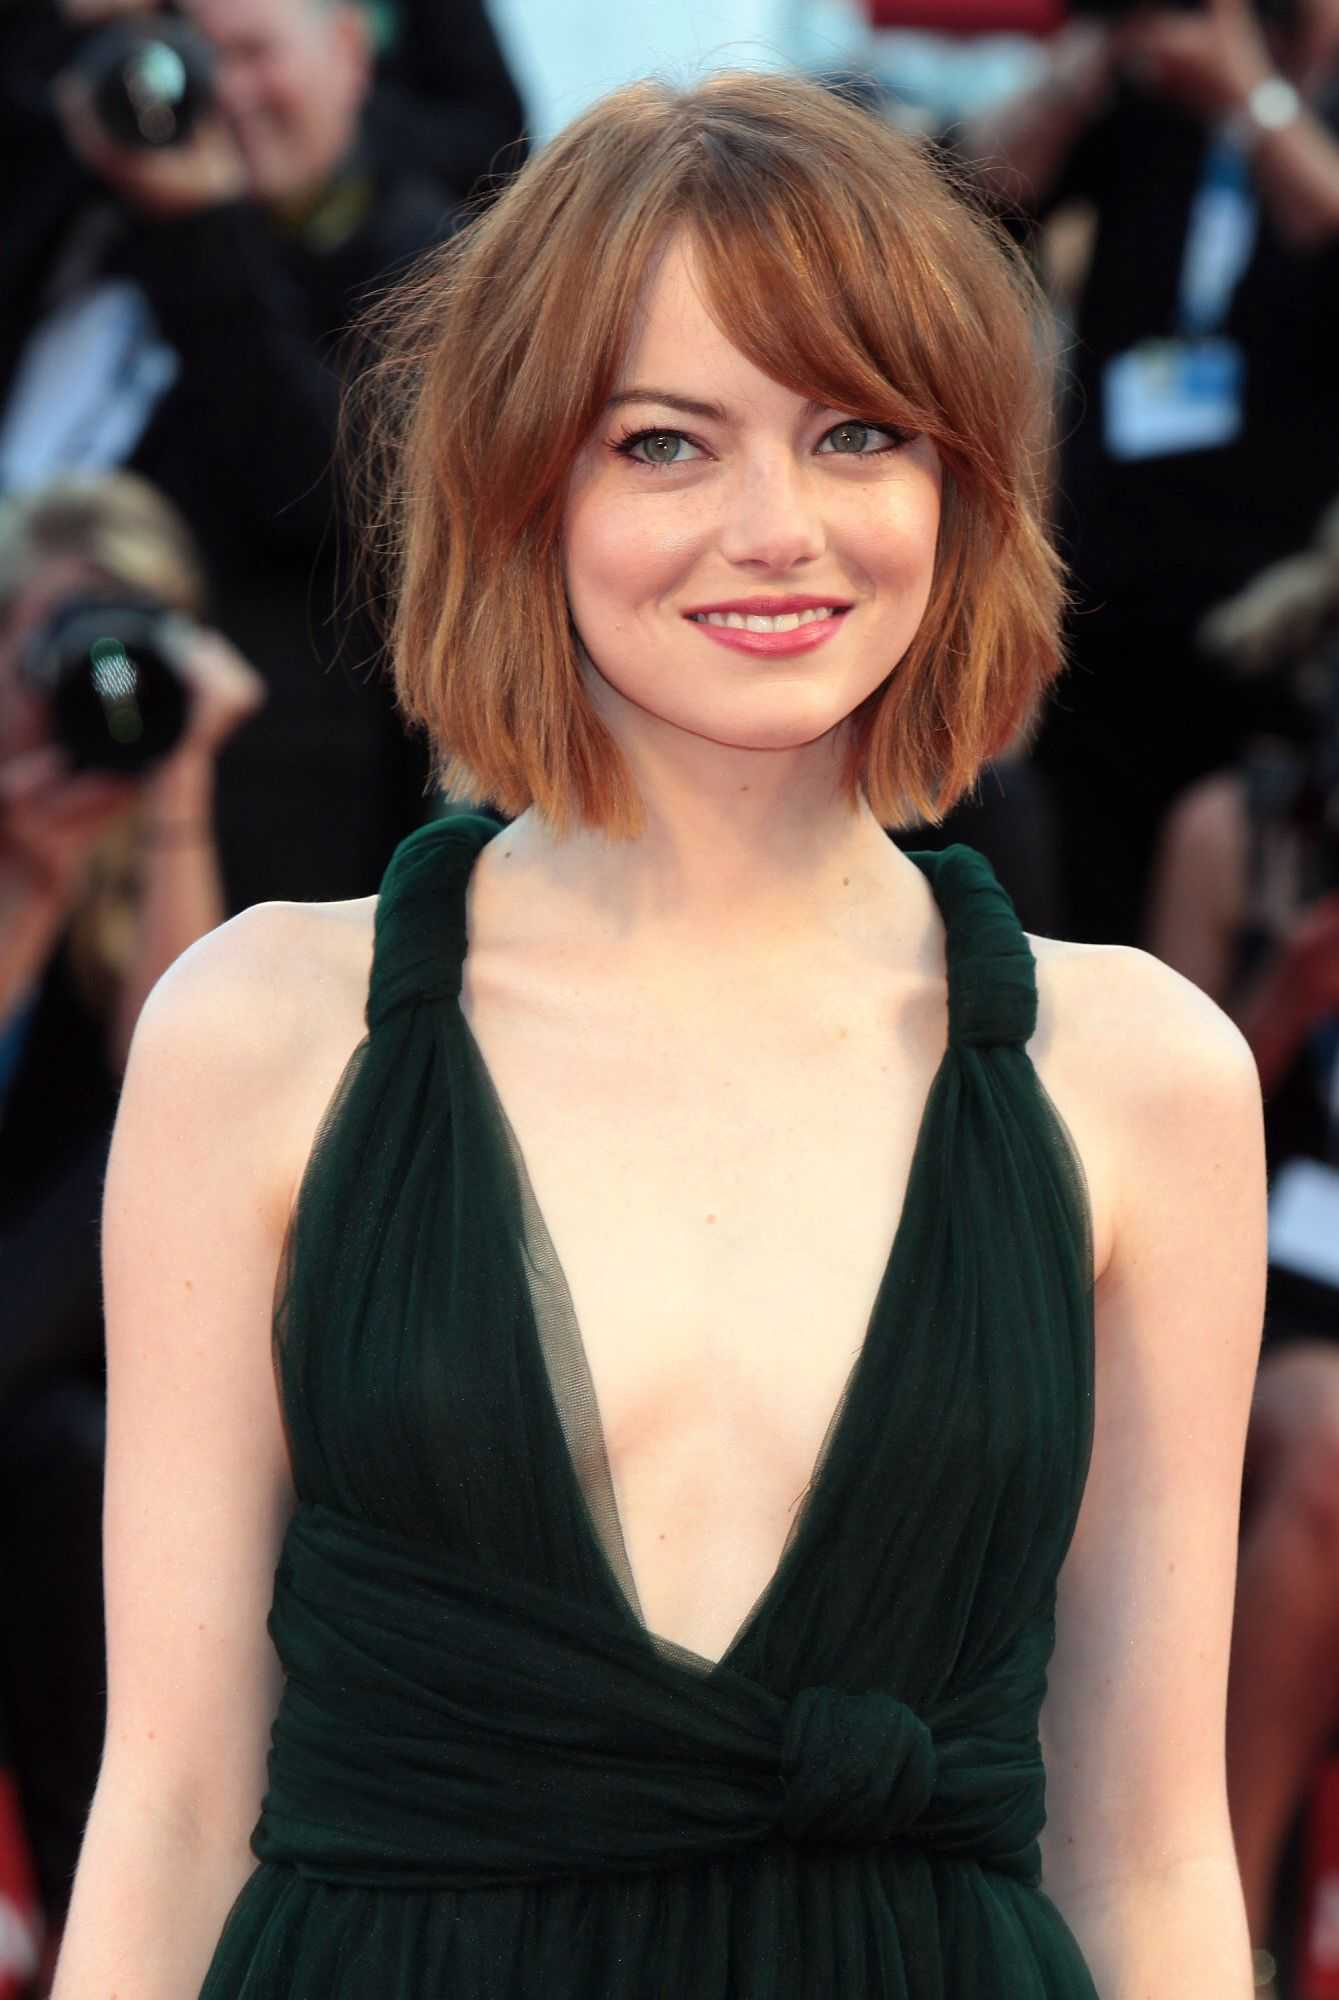 49 hot photos of Emma Stone Boobs will make your day super